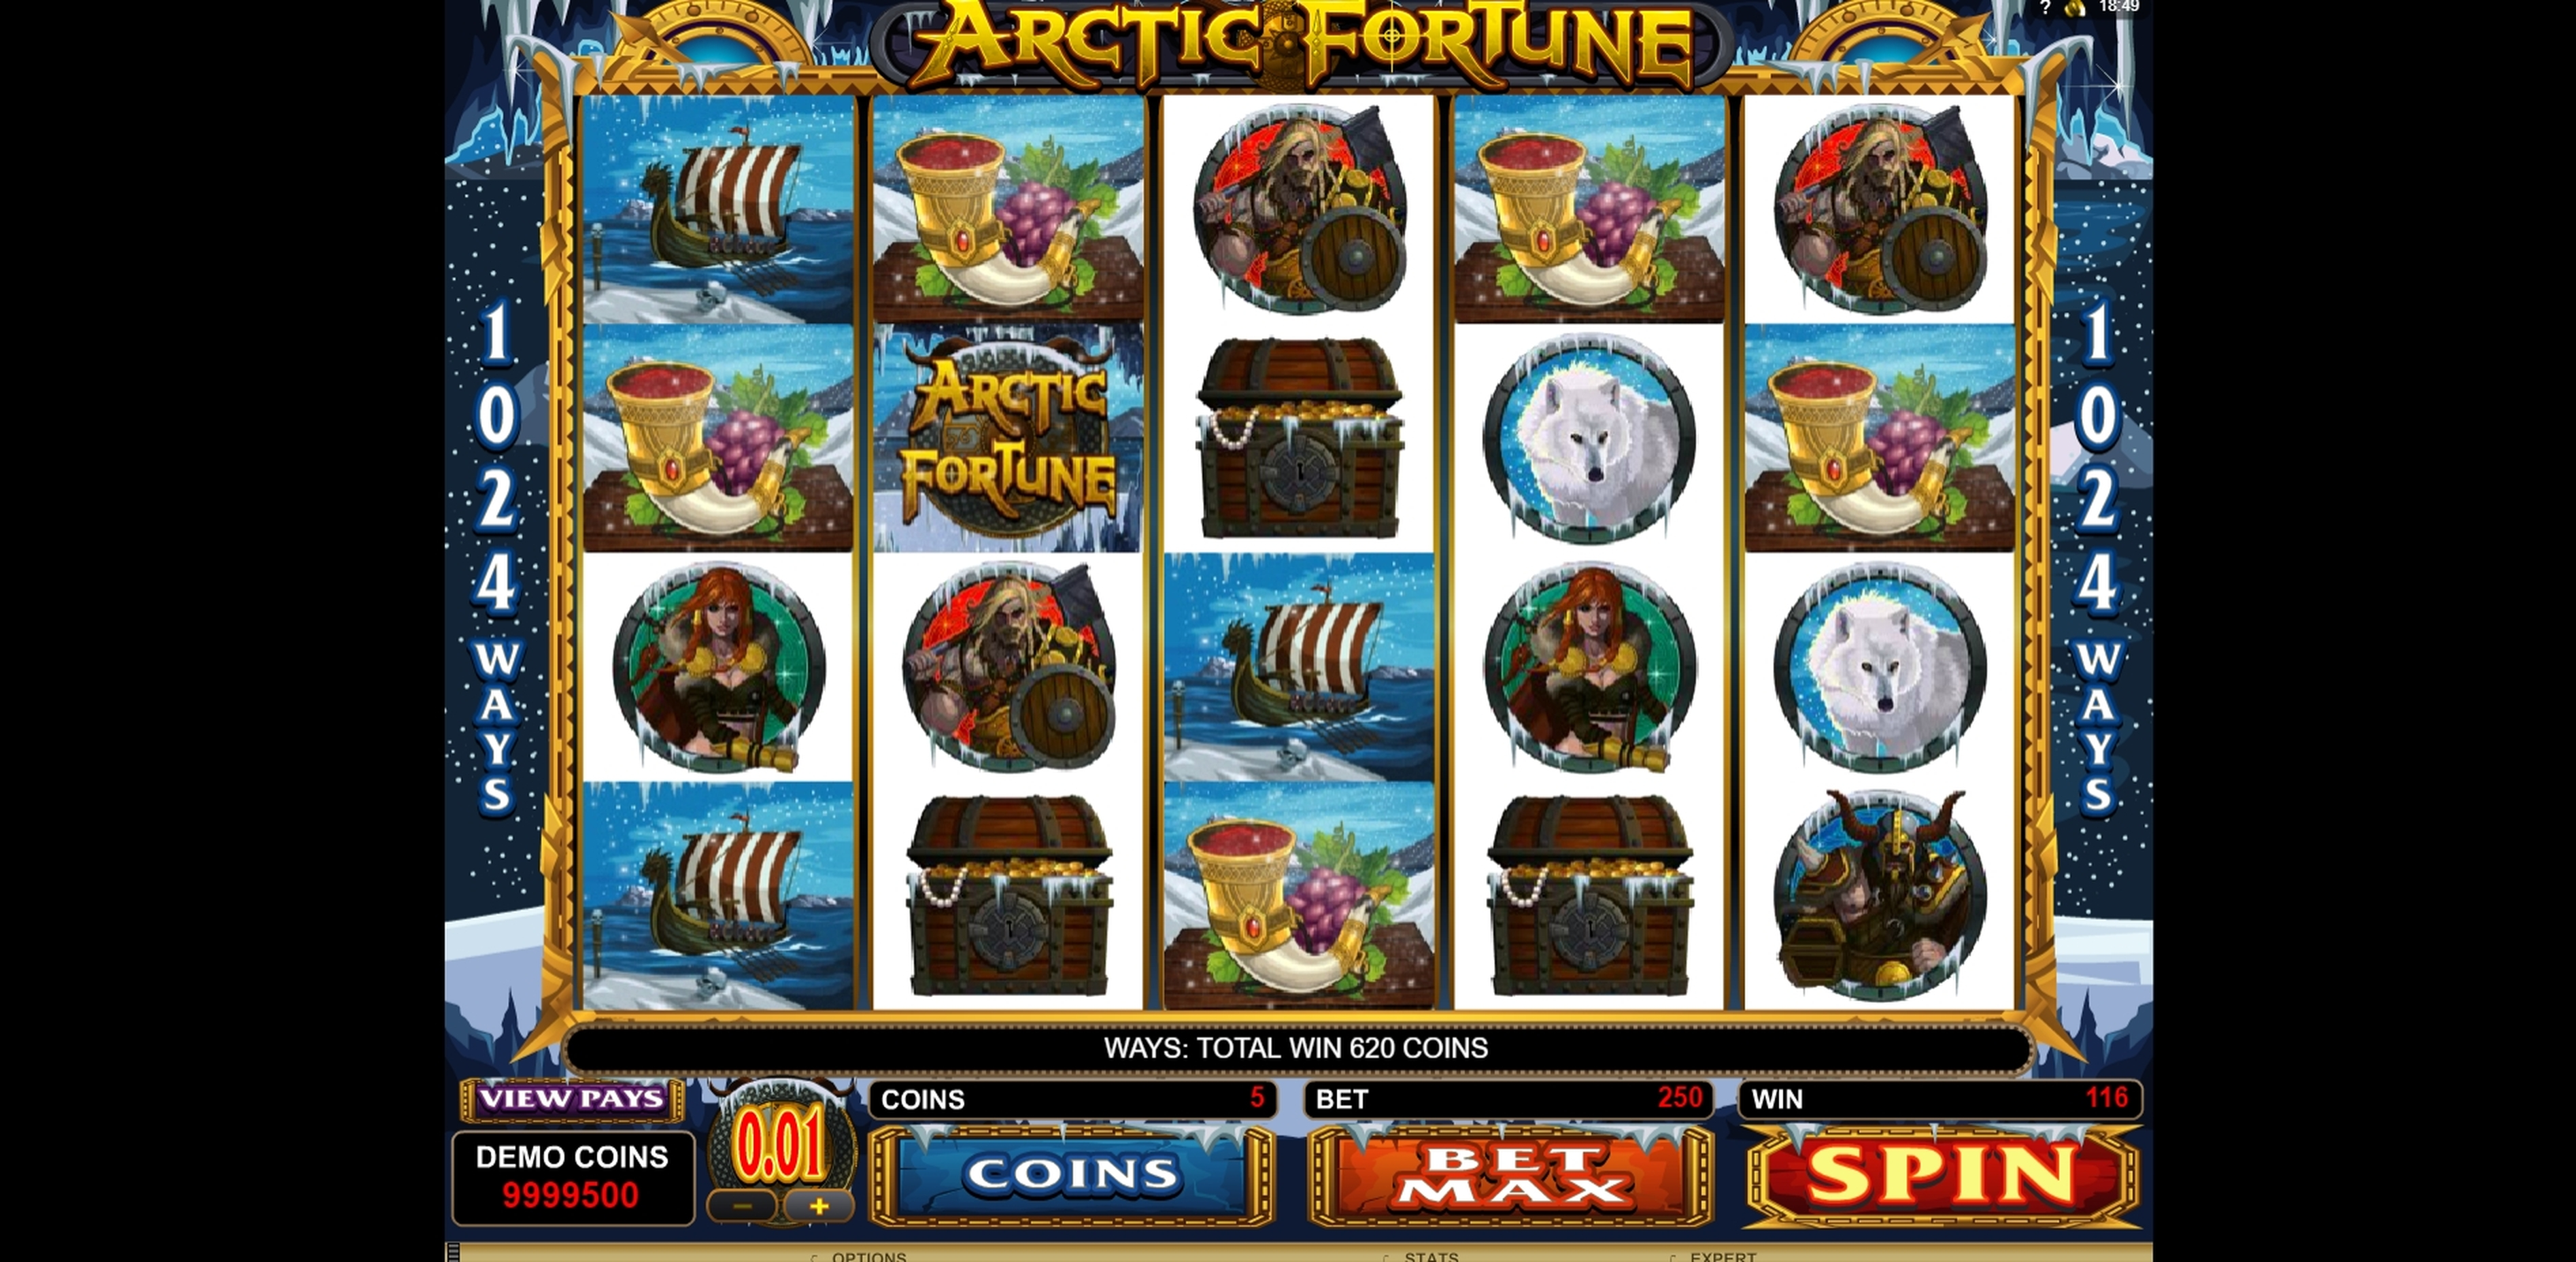 Win Money in Arctic Fortune Free Slot Game by Microgaming